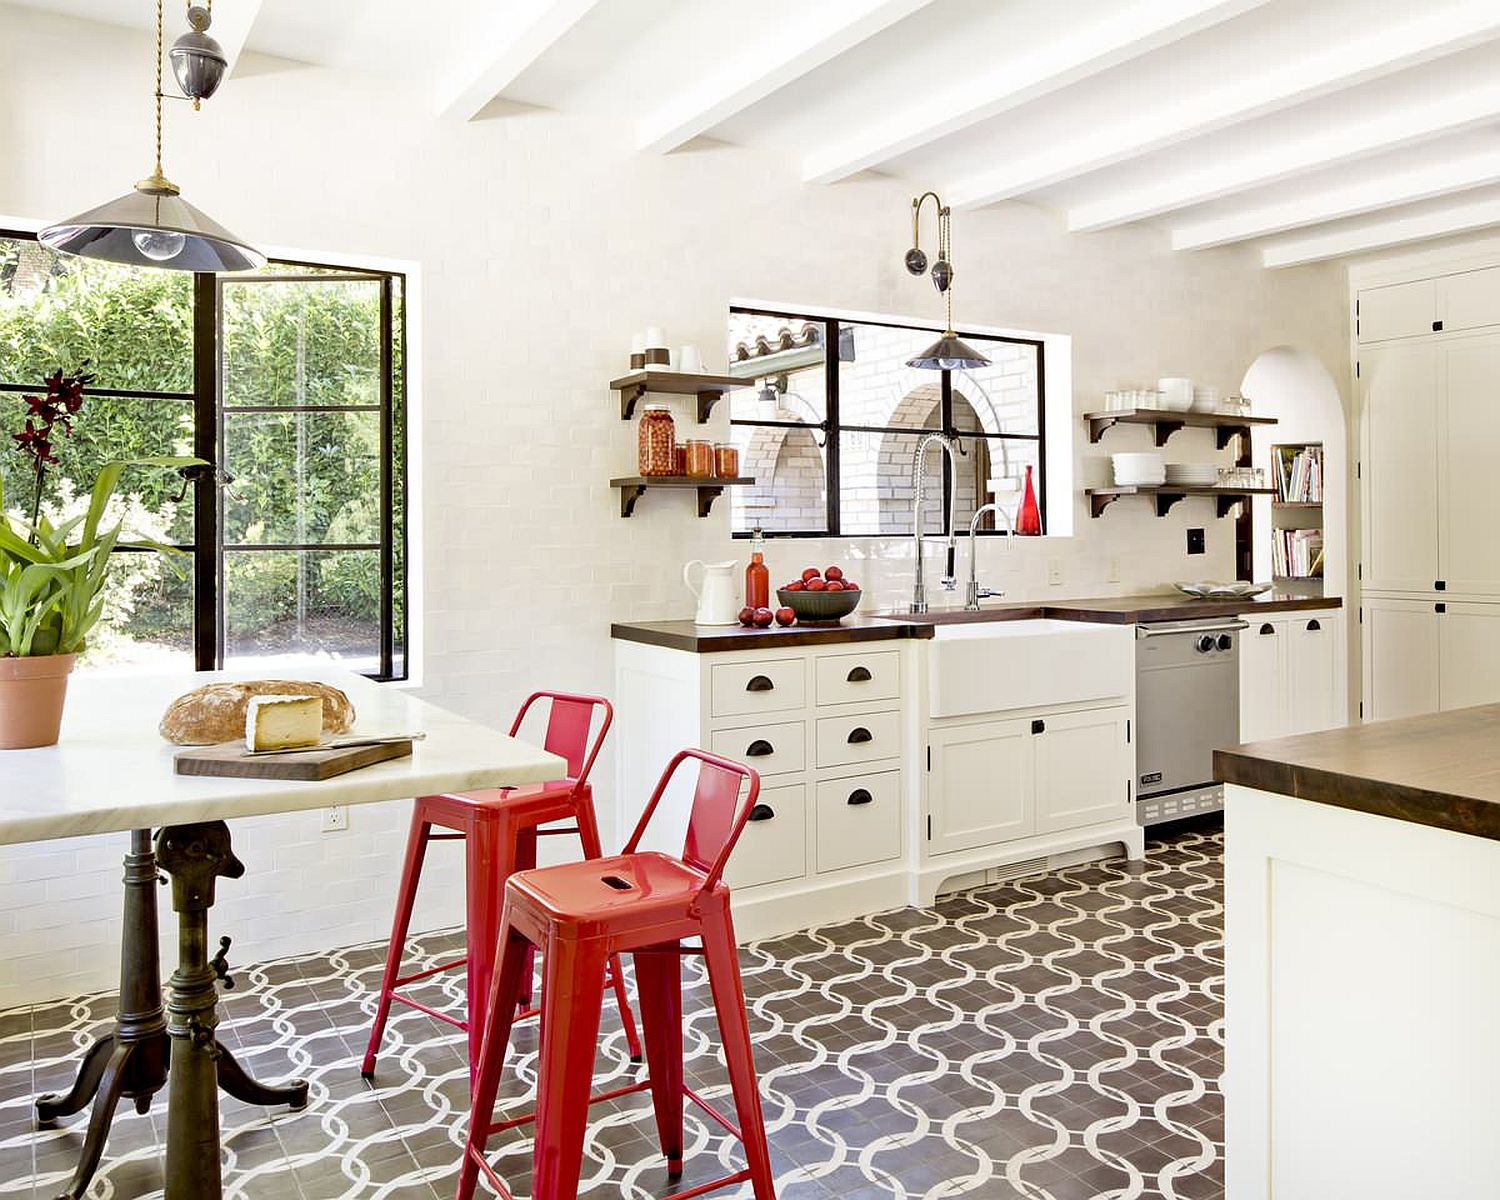 Red bar chairs bring brightness to the small and stylish Mediterranean kitchen in white with lovely floor tiles